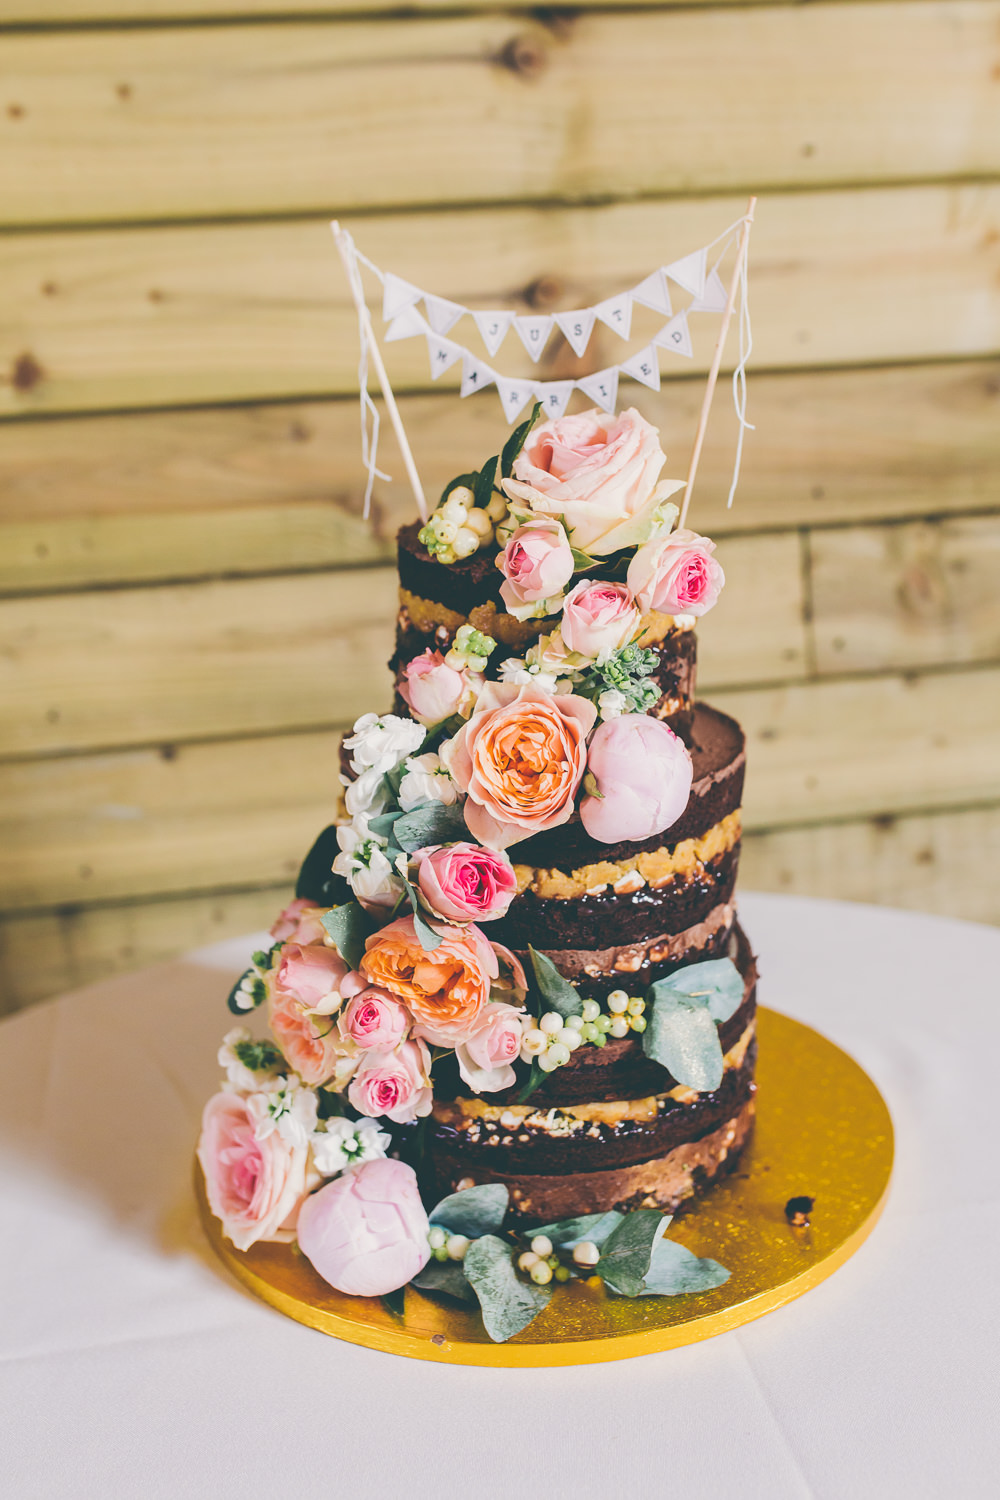 Naked Cake Chocolate Sponge Layer Flowers Floral Bunting Topper High Billinghurst Farm Wedding Larissa Joice Photography